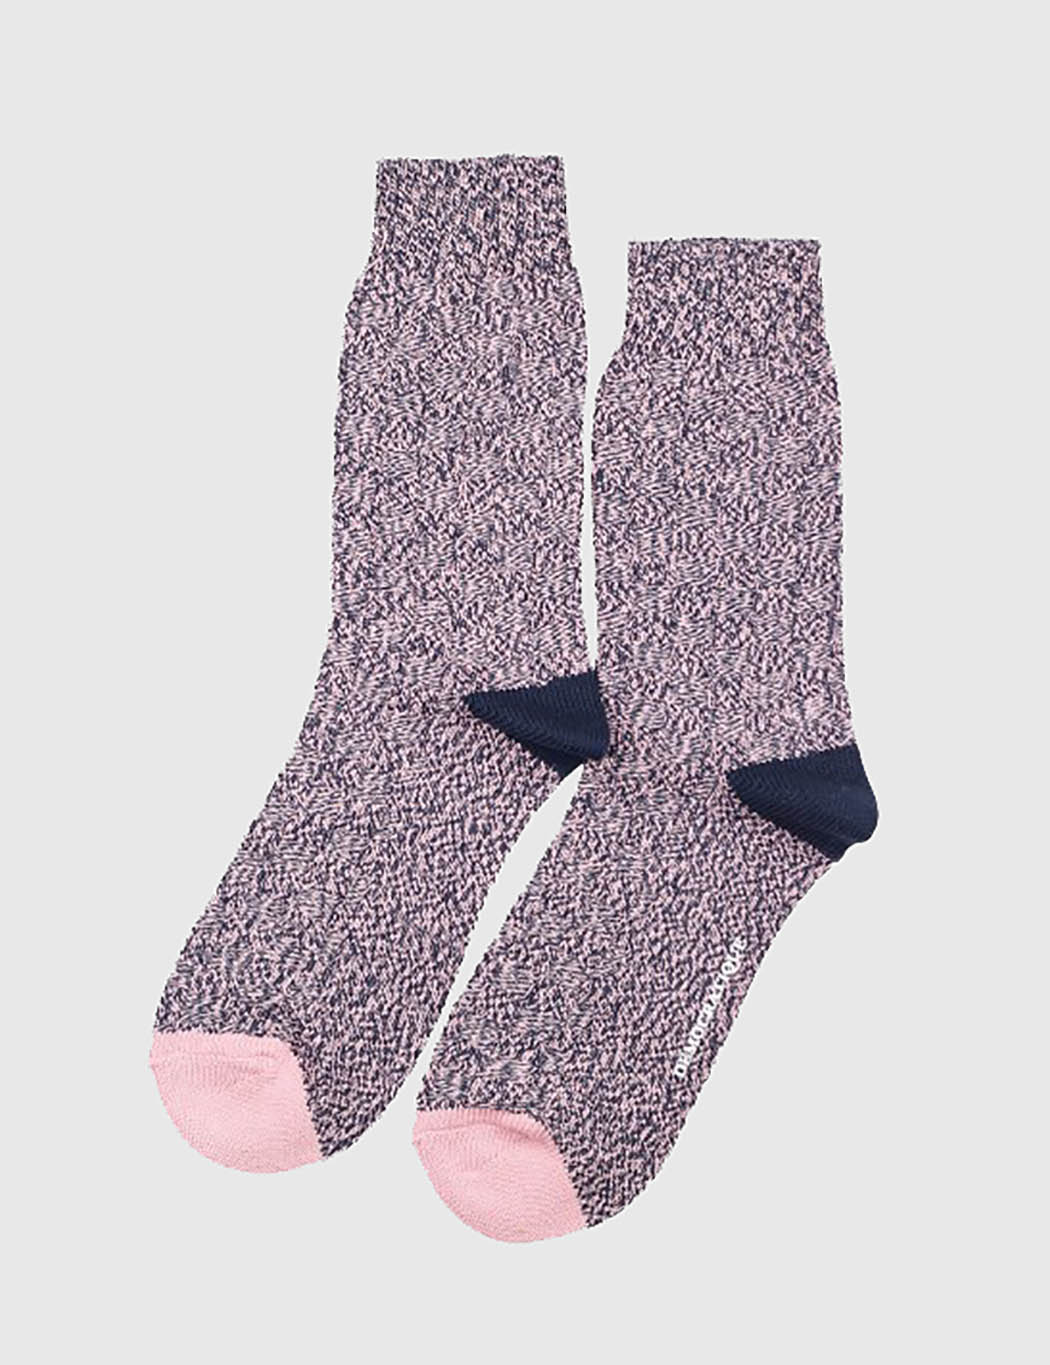 Democratique Relax 8 by 8 Weave Socks - Navy/Pink